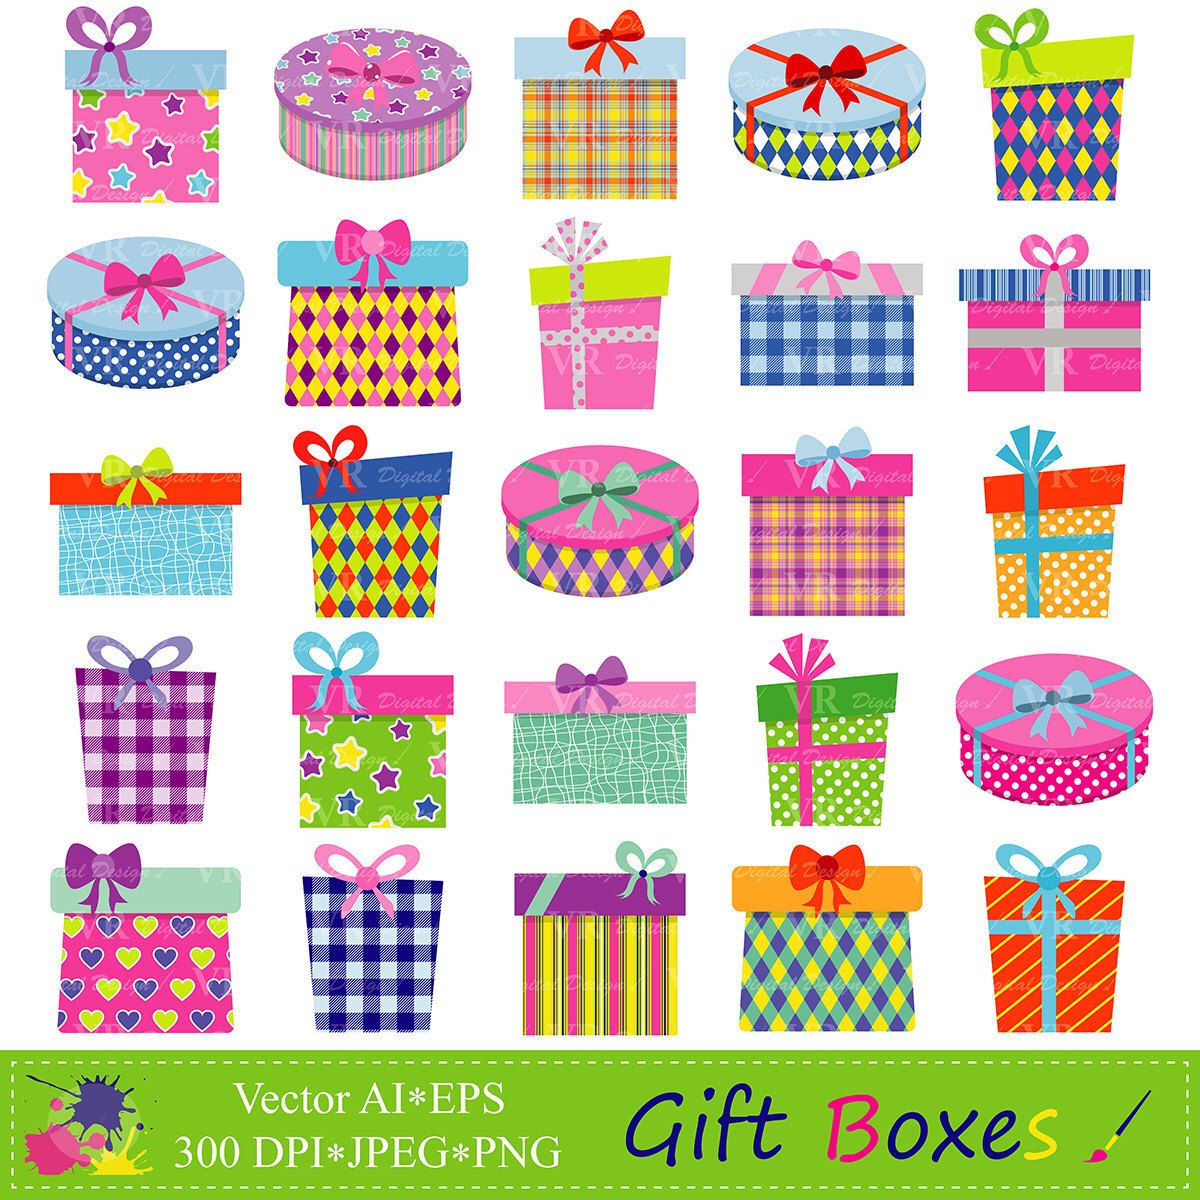 Gift Boxes Clipart Gifts Presents Clip Art Birthday Party